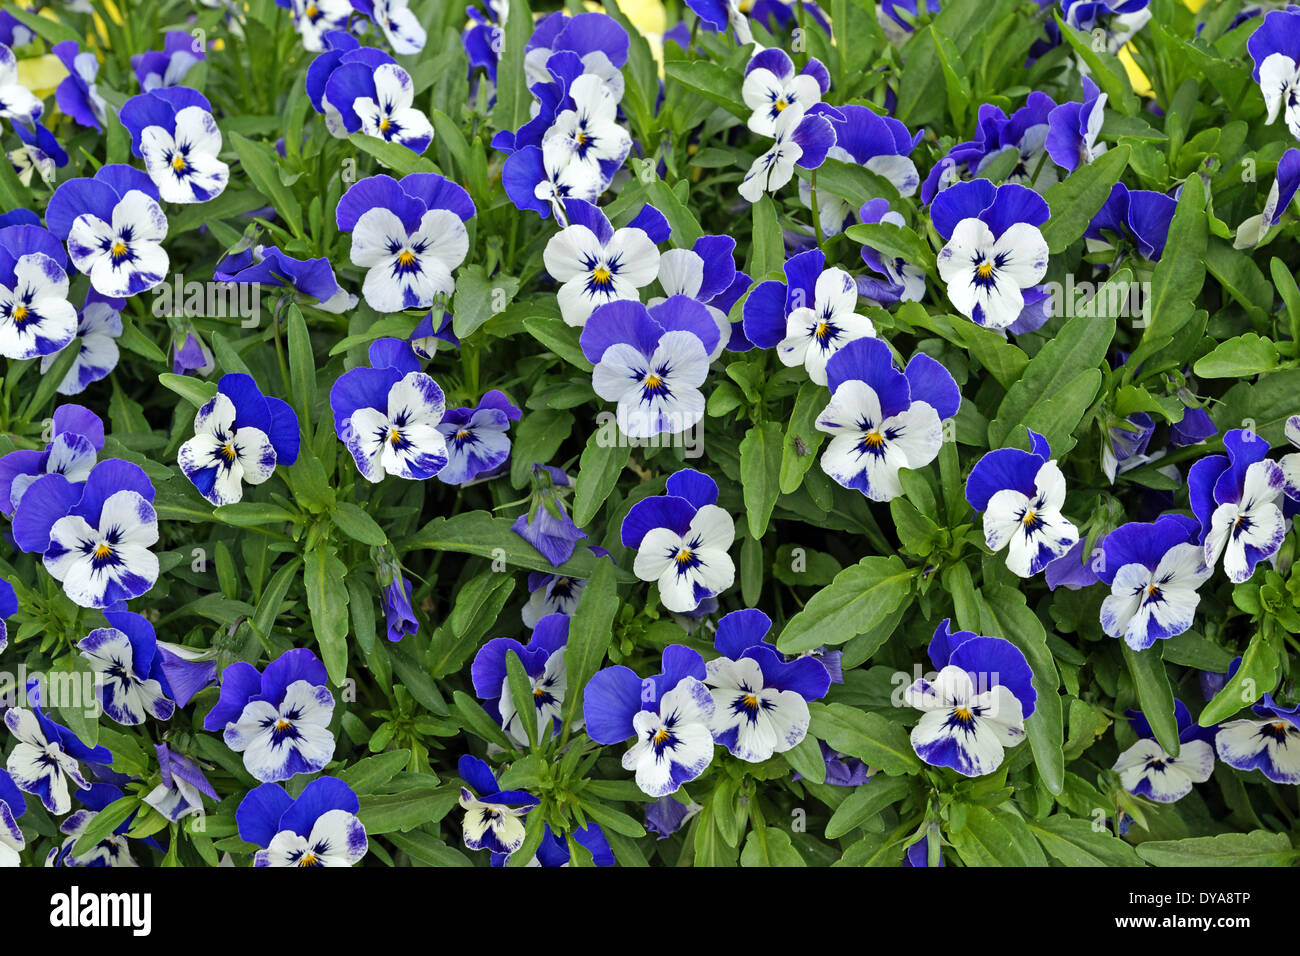 Europe, Italy, pansy, pansies, flowers, patterns, plants - Stock Image